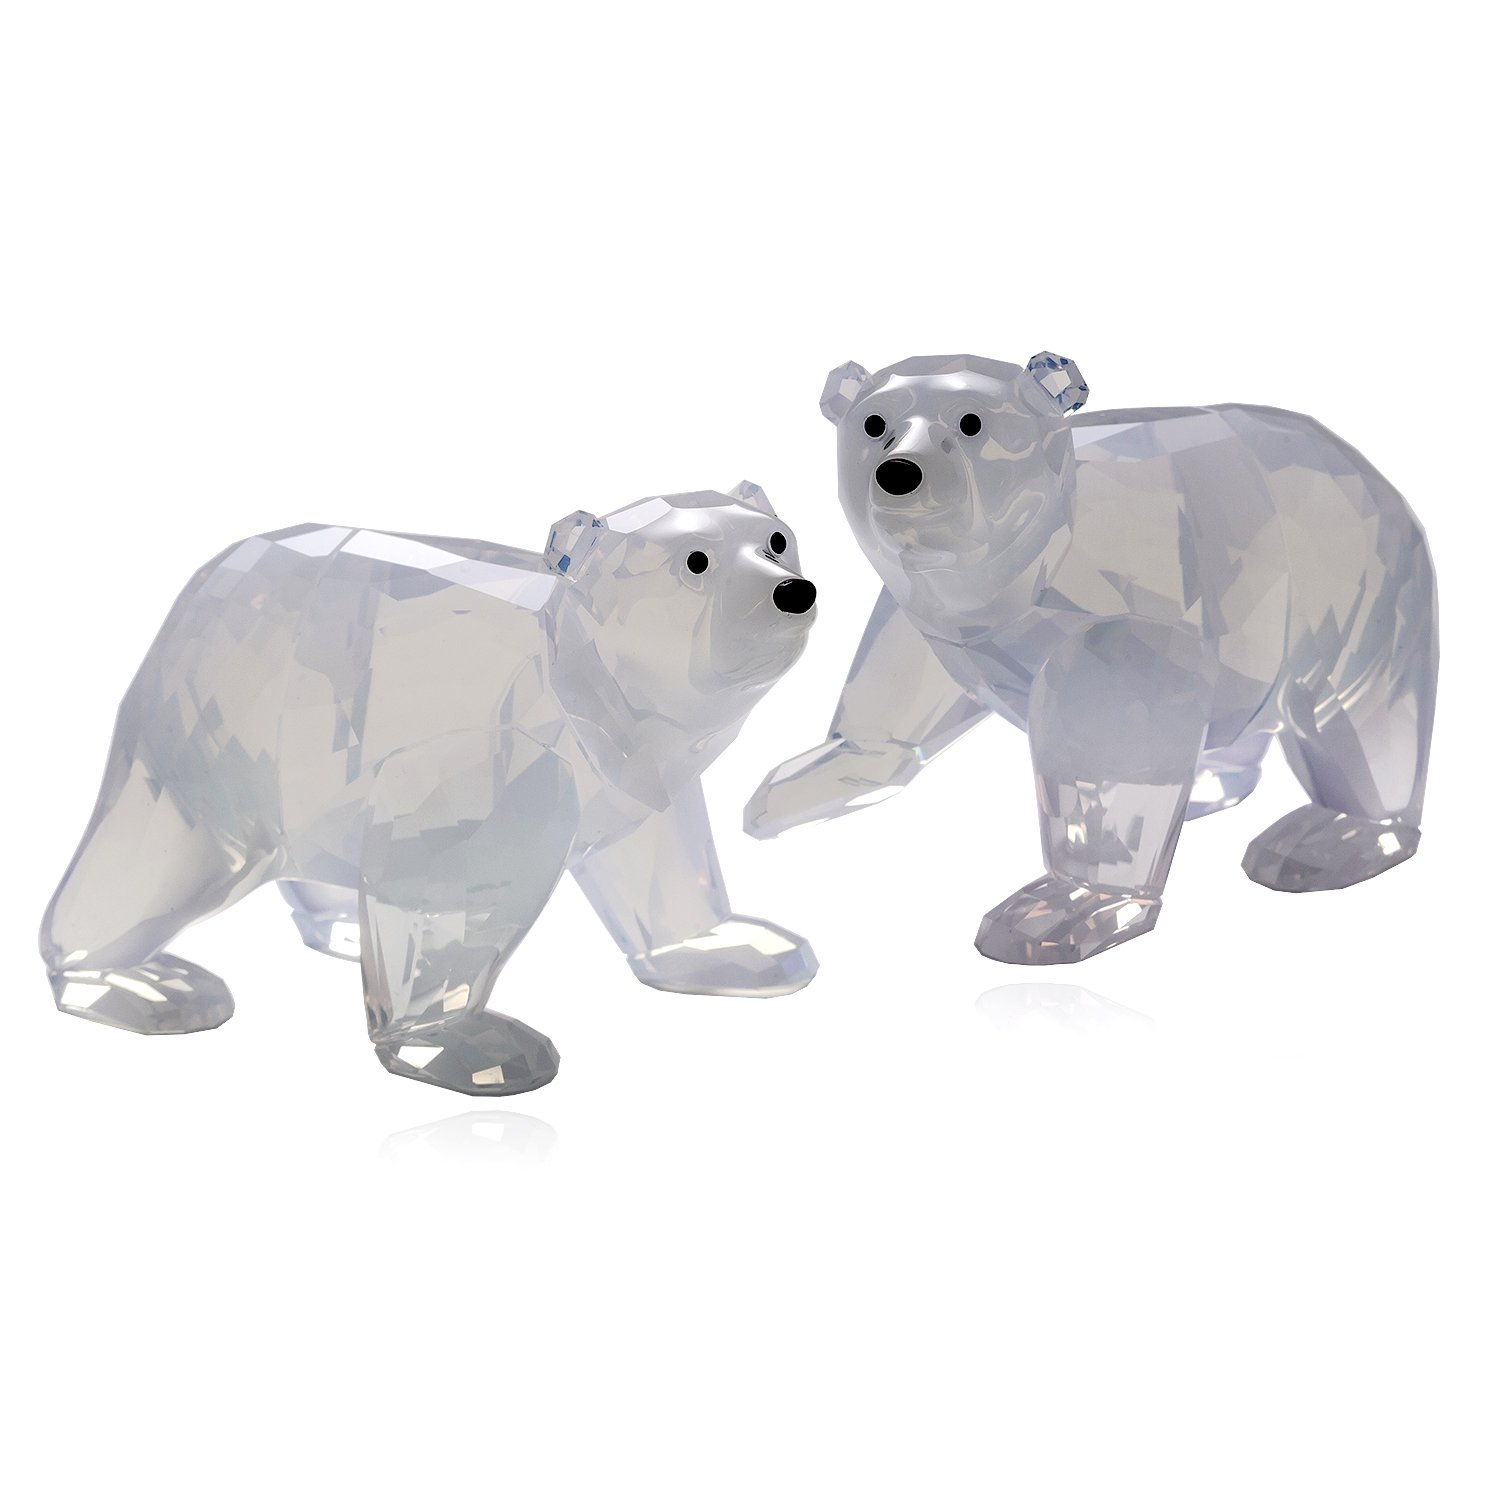 Swarovski Polar Bear Cubs, White Opal Crystal Figurine - Retired 1080774